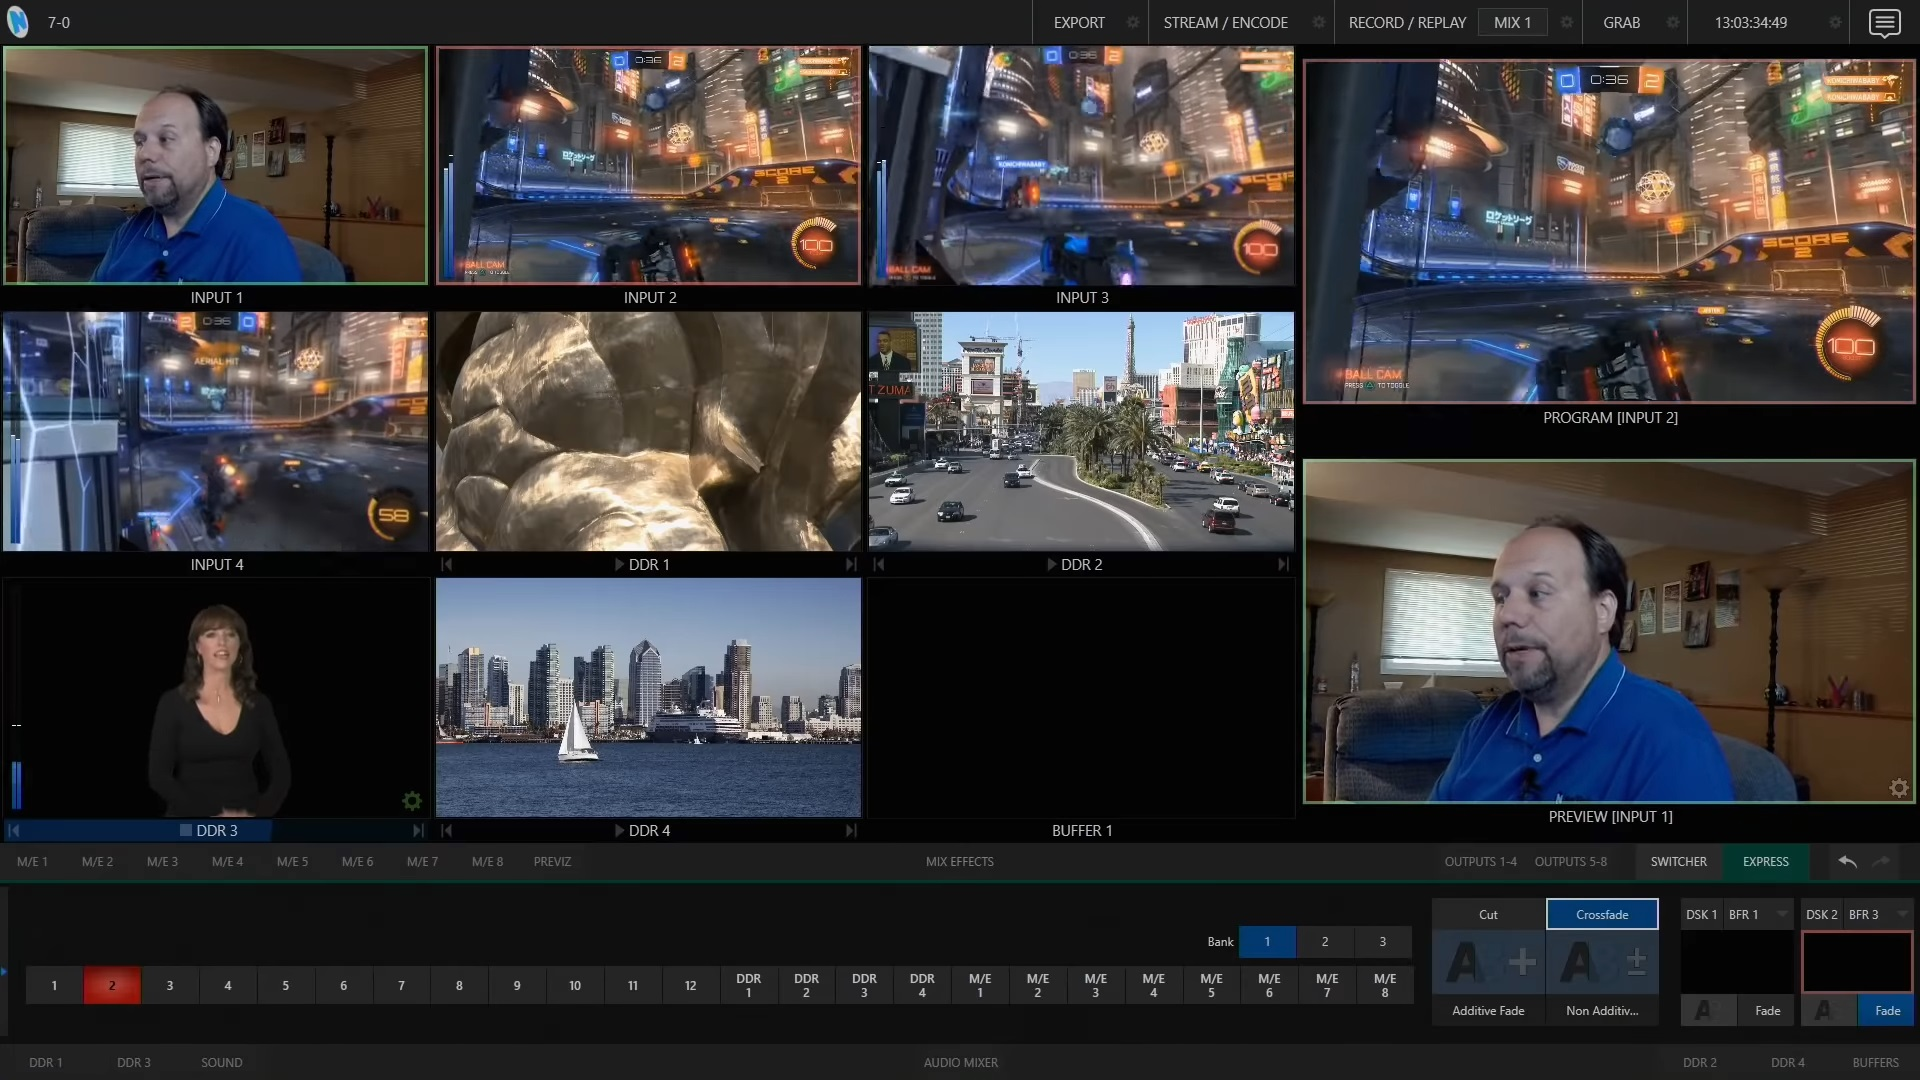 TriCaster TC1 Live Production Interface - Express Switcher mode